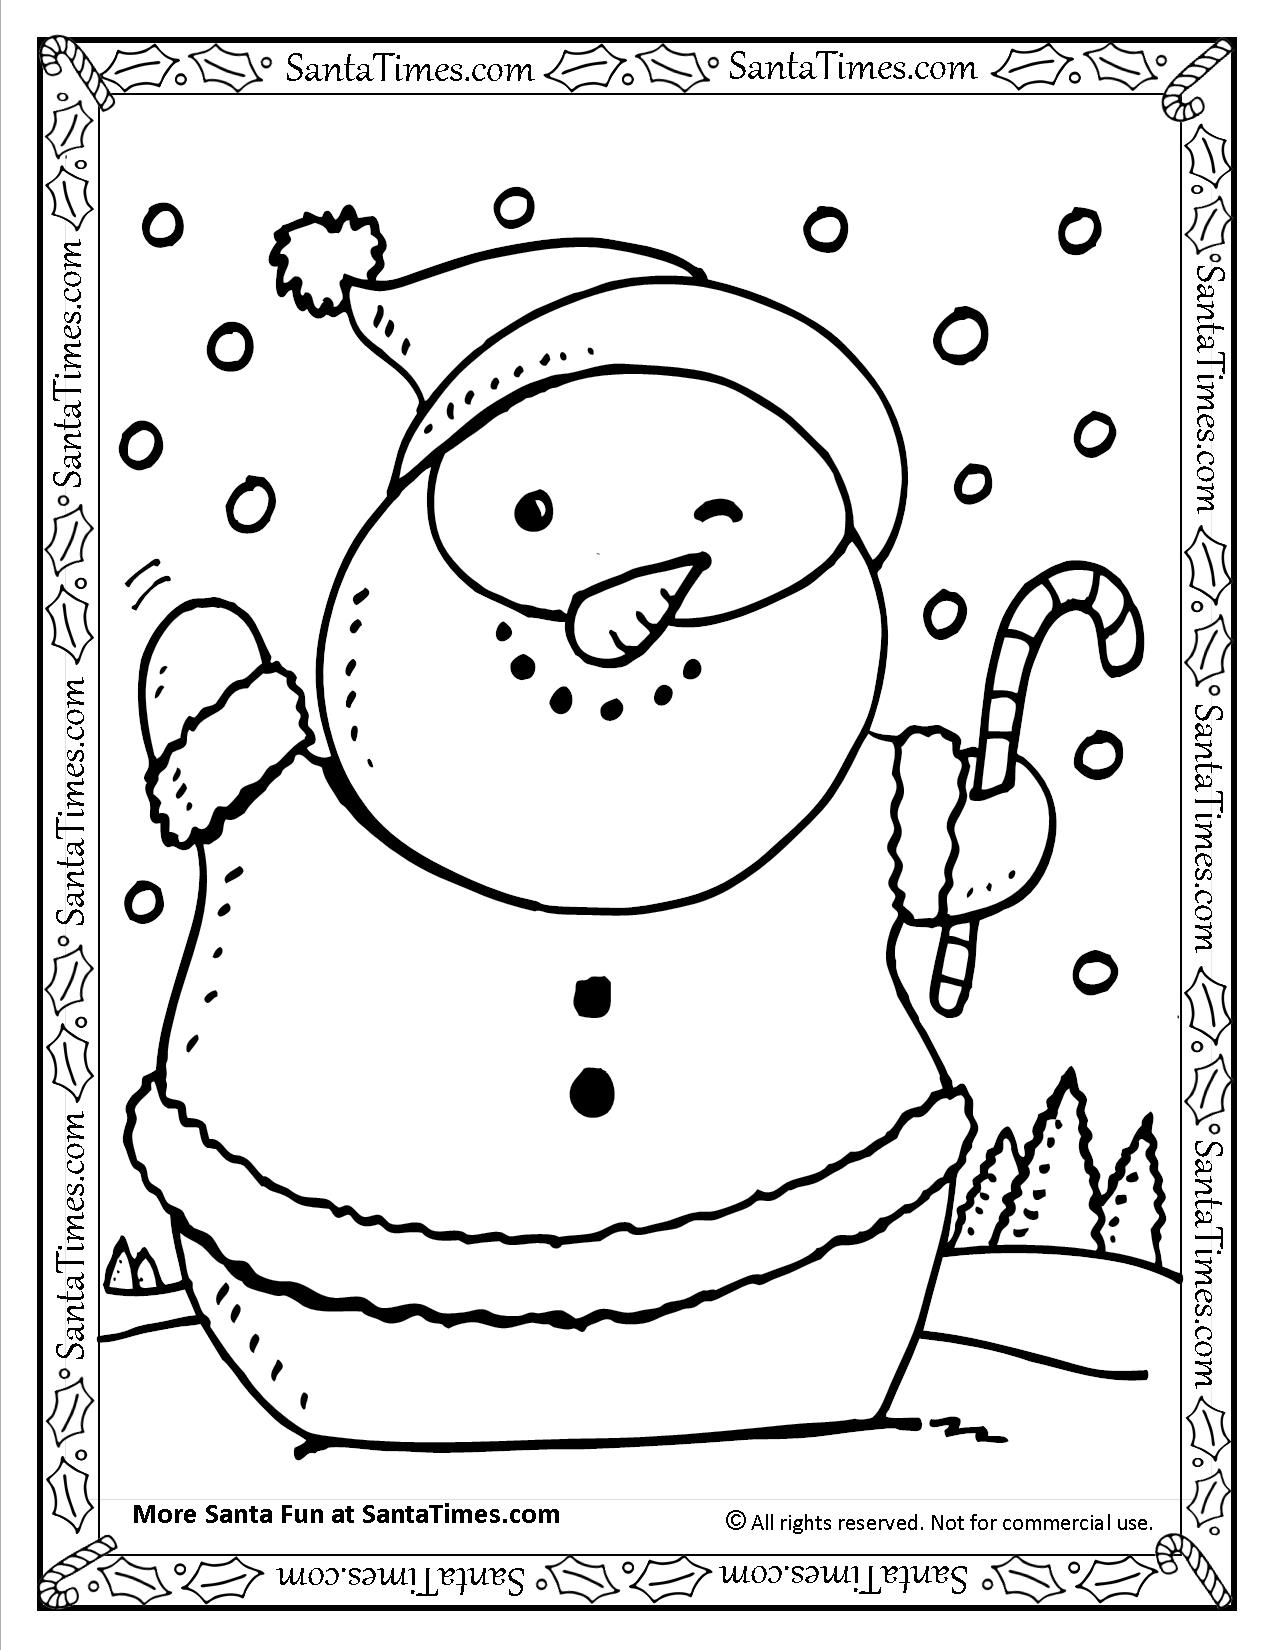 photo relating to Snowman Printable Coloring Pages identify Santa Snowman Printable Coloring Site